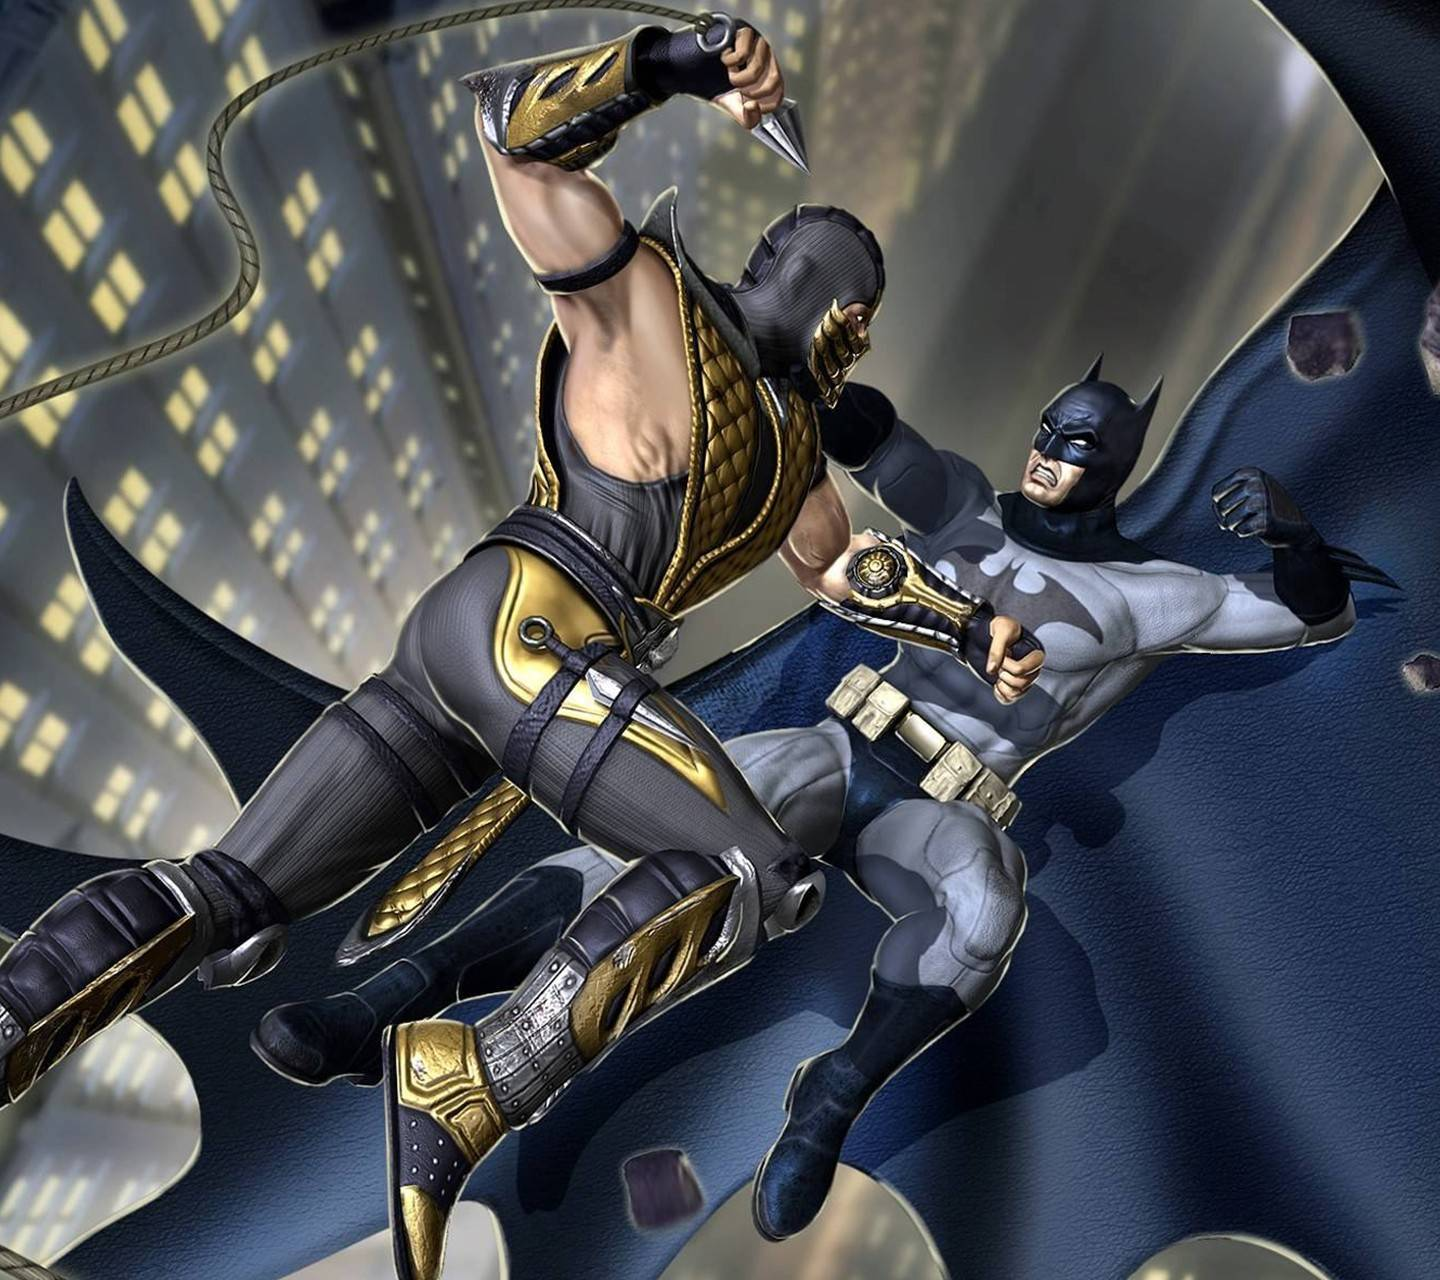 Scorpion vs Batman